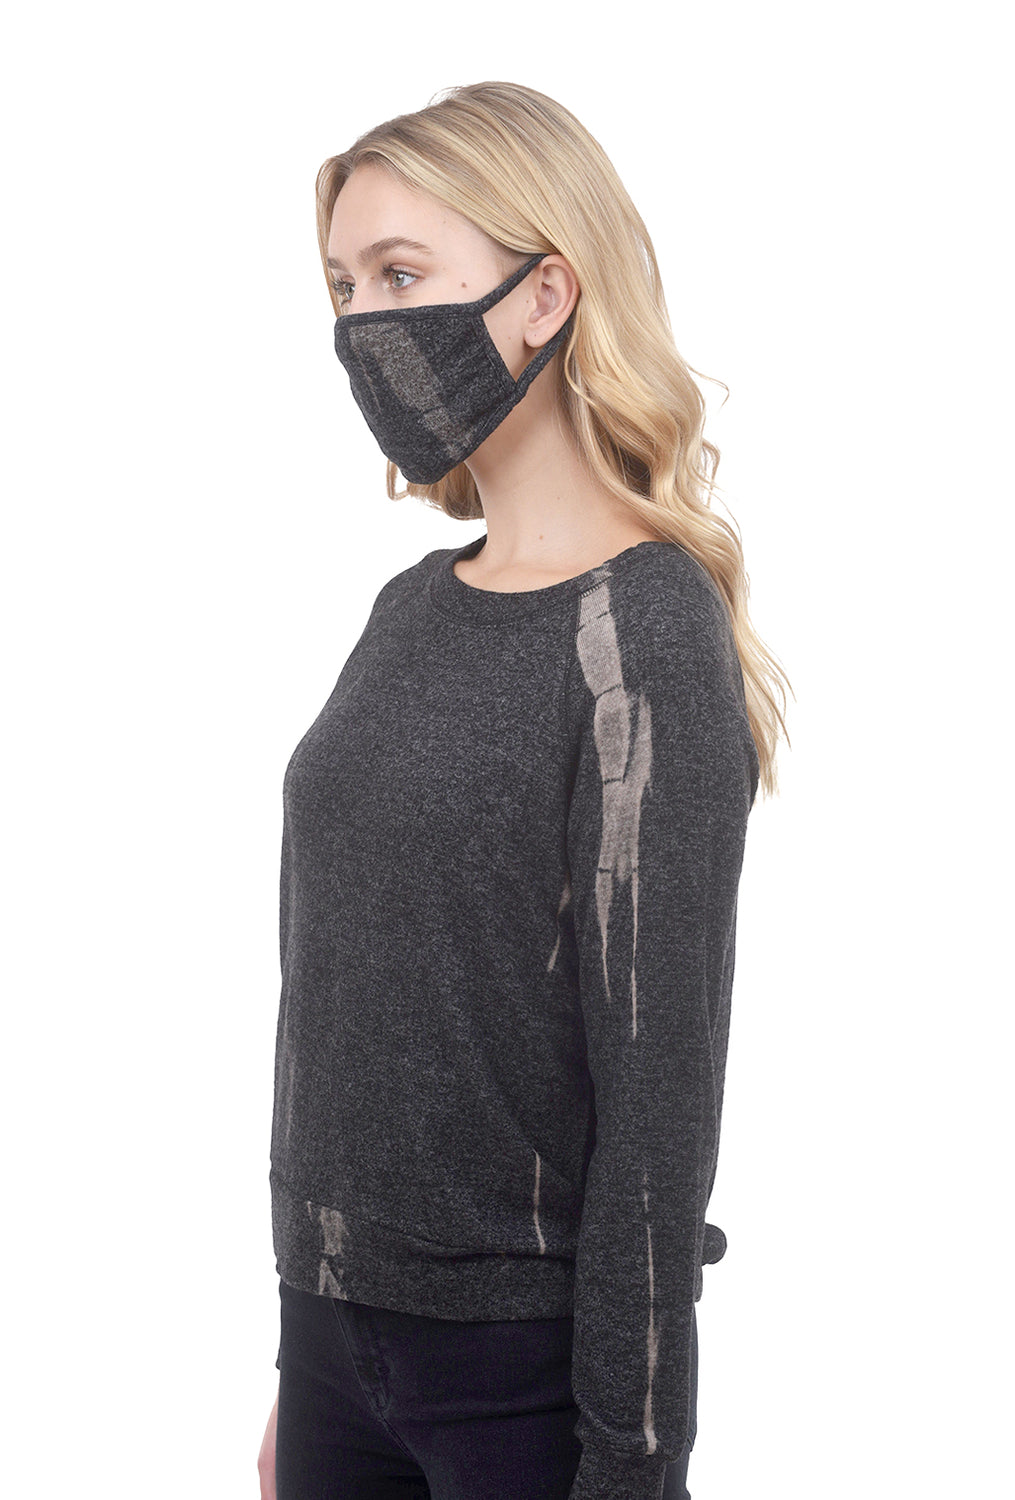 Coin1804 Cozy Tie-Dye Mask, Char/Taupe One Size Charcoal